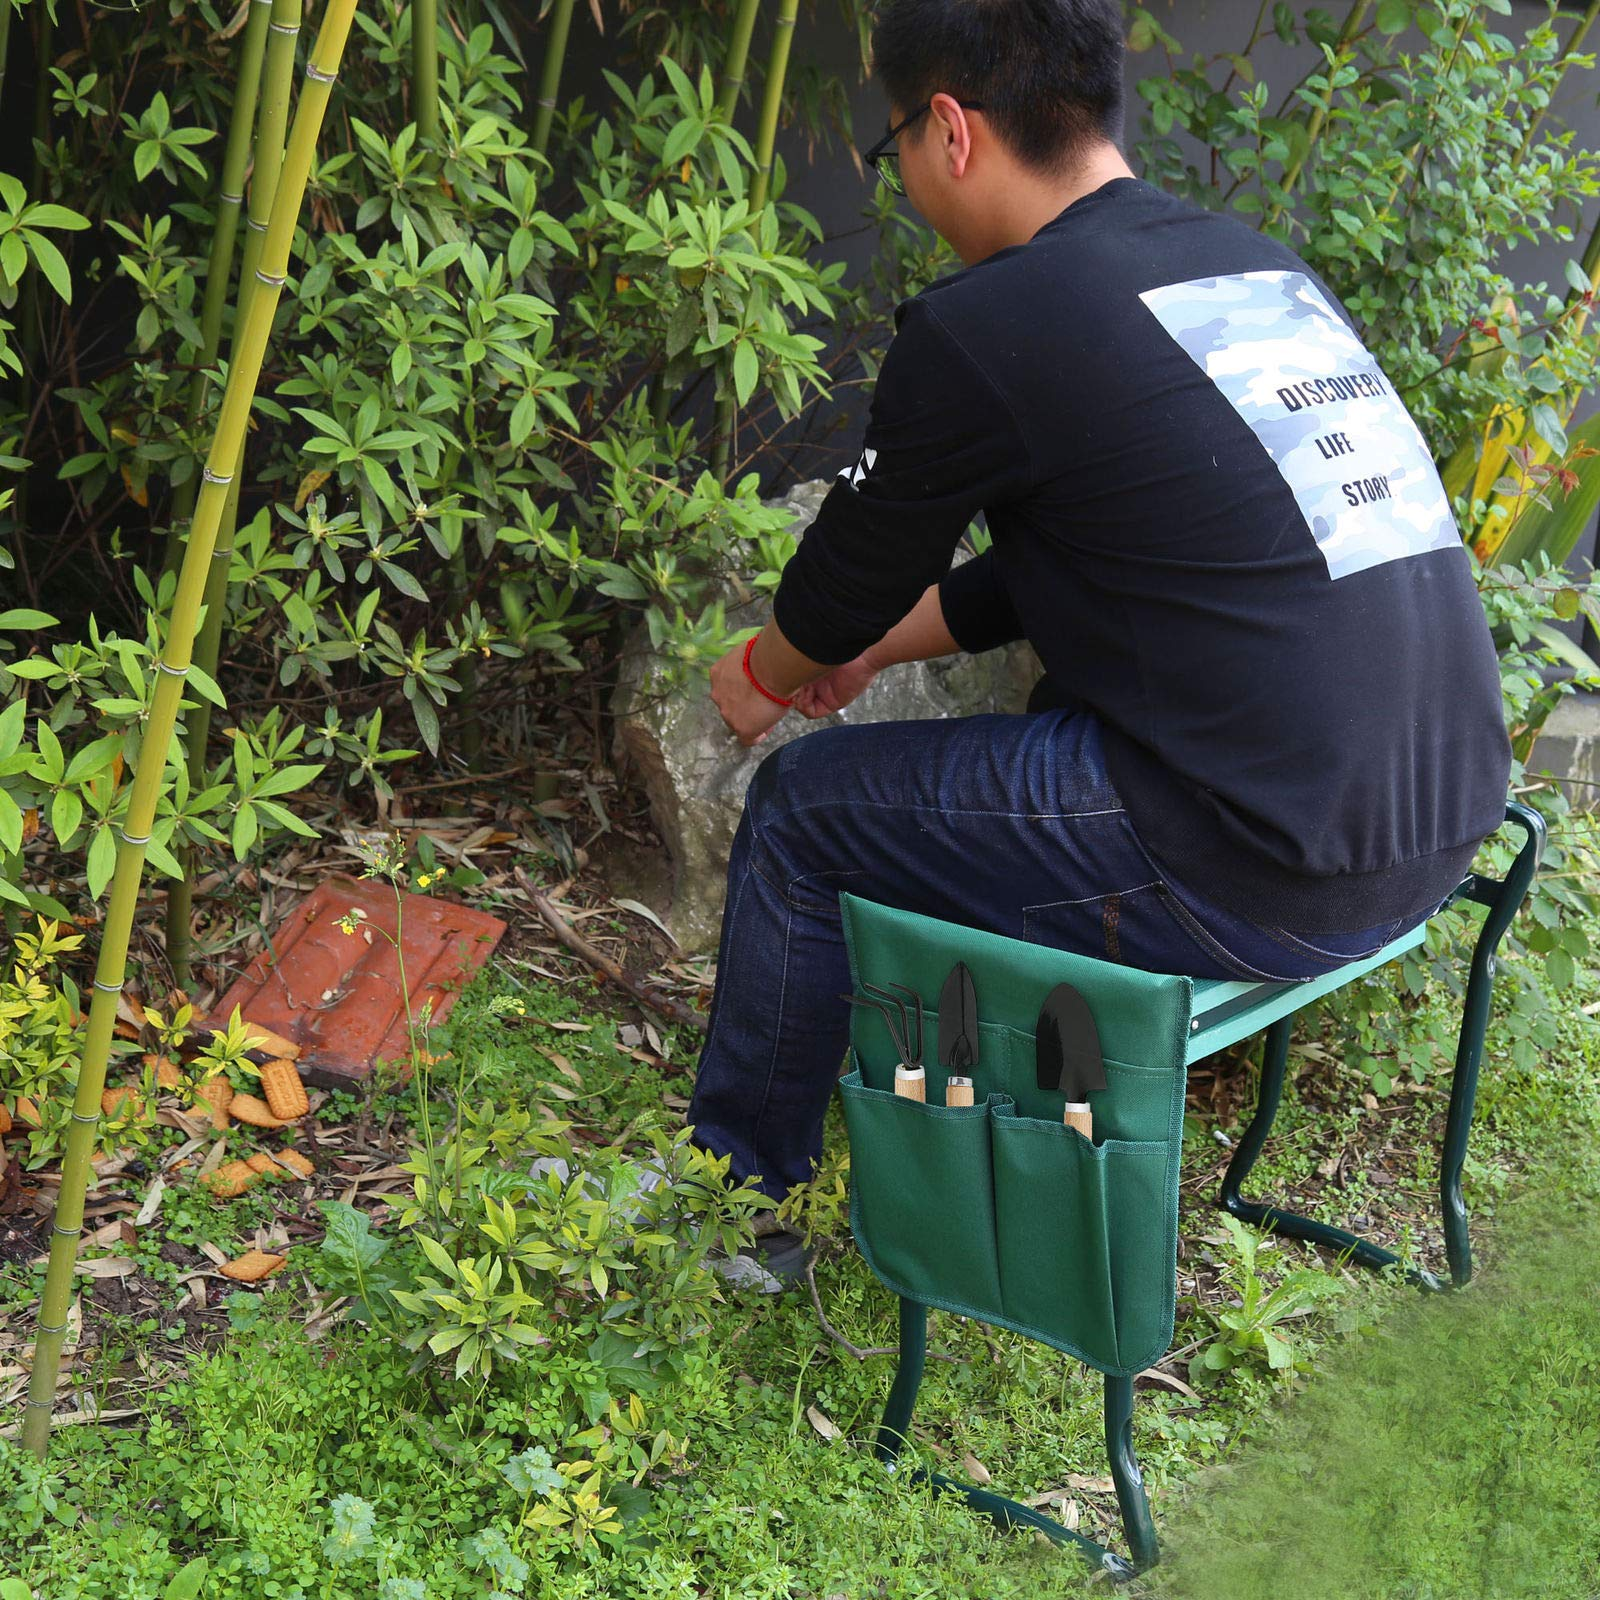 Has_Shop Garden Bench Foldable Kneeler Stool Soft Cushion Seat Pad Kneeling w Tool Pouch by Has_Shop (Image #2)